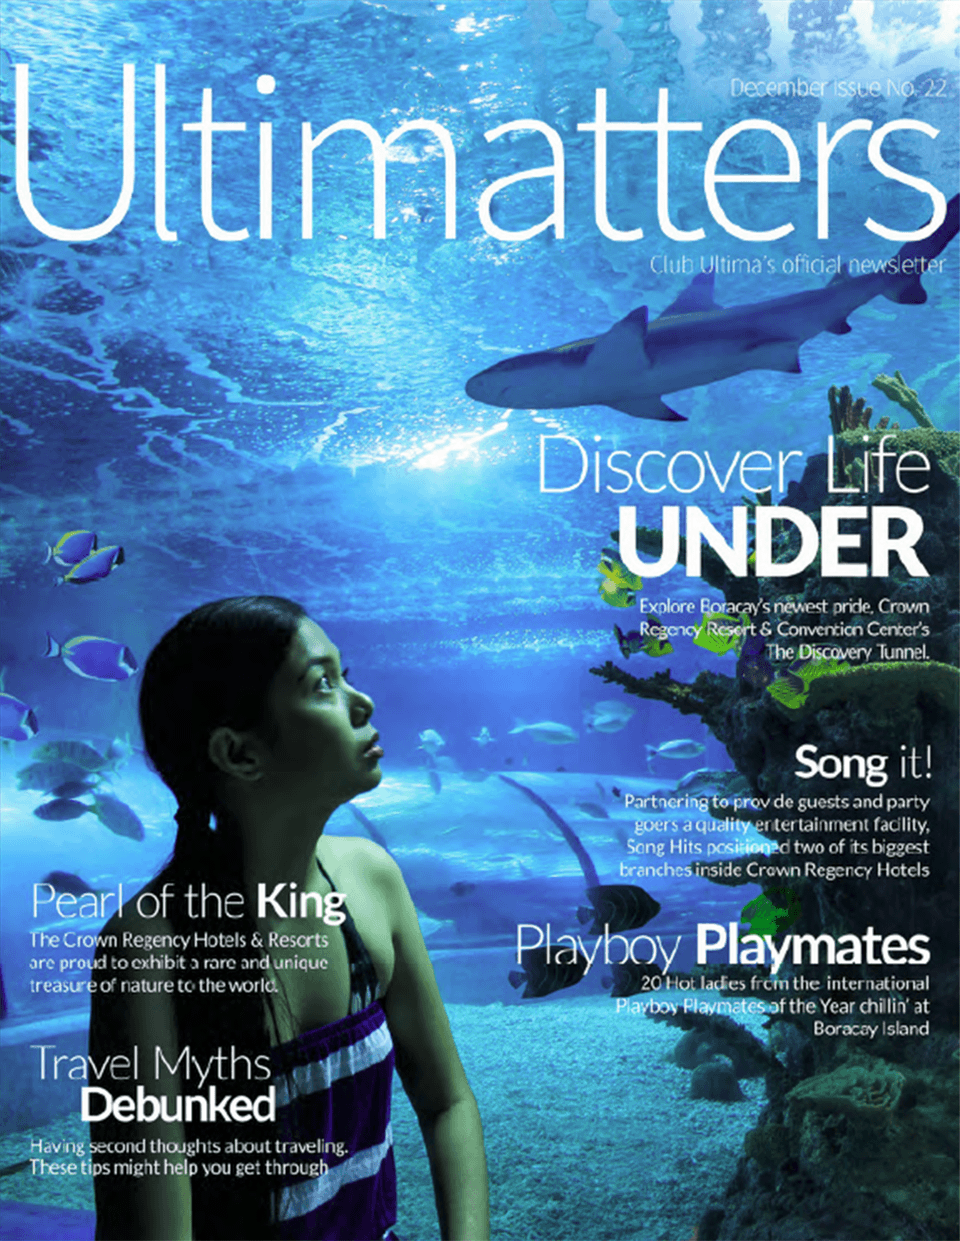 Ultimatters Issue No. 22